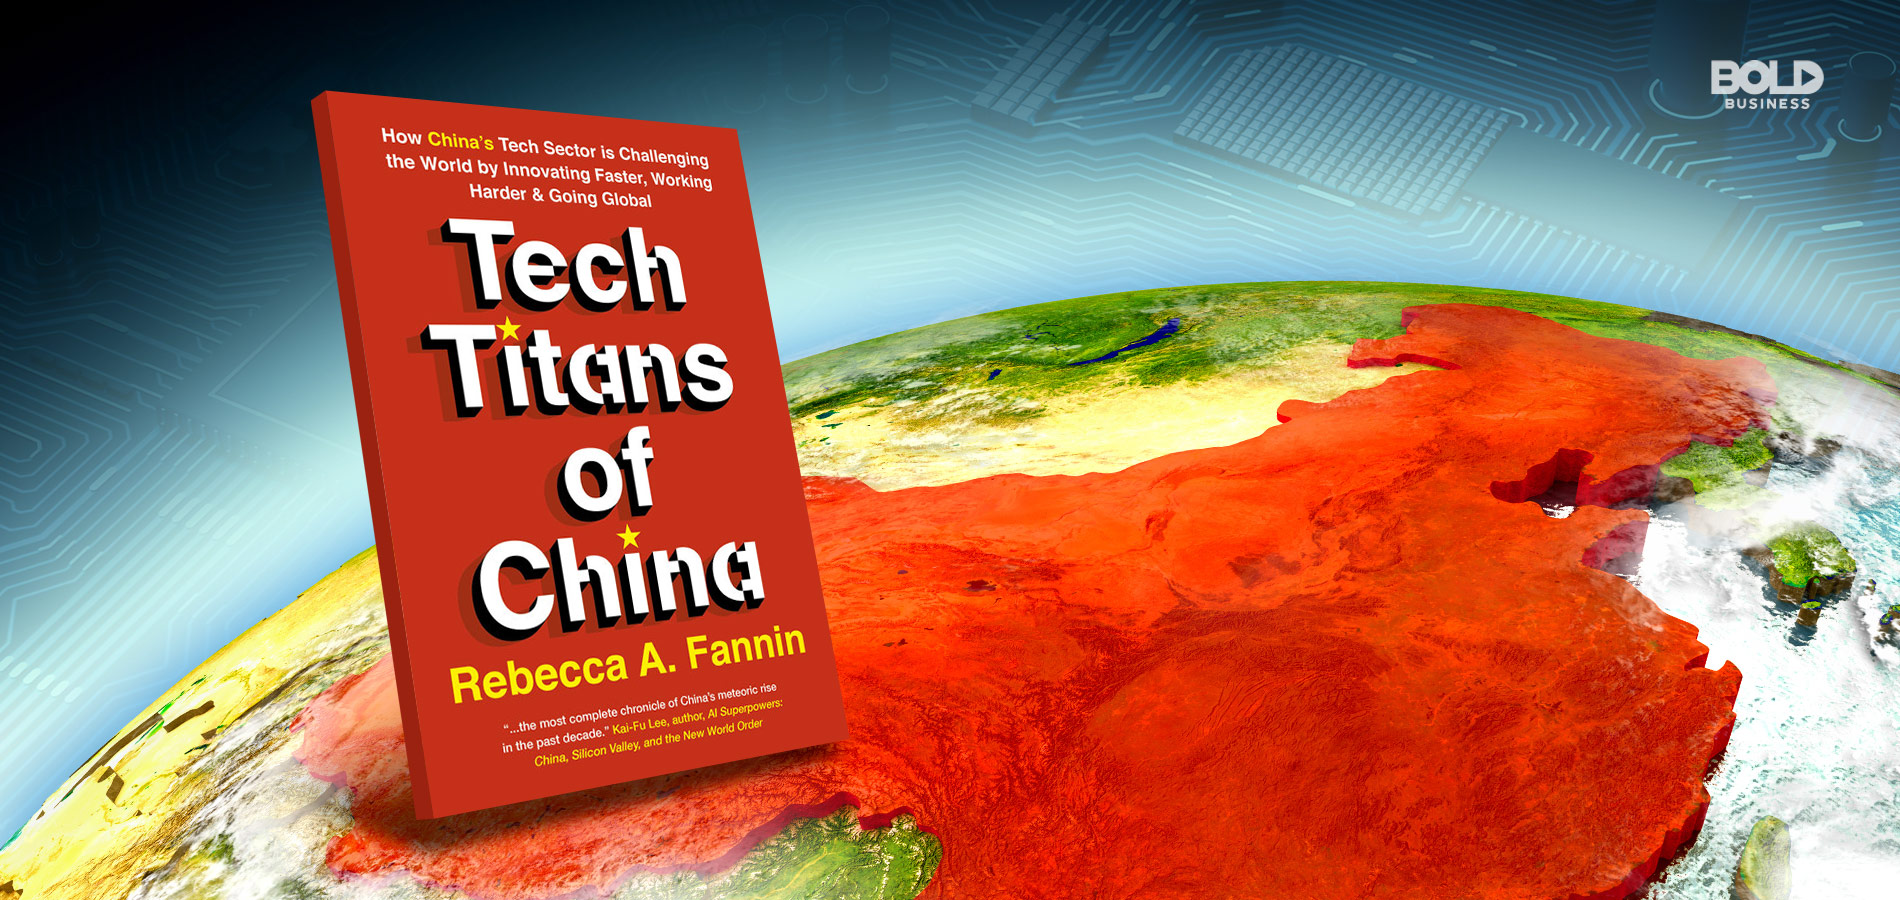 A picture of the Tech Titans of China book